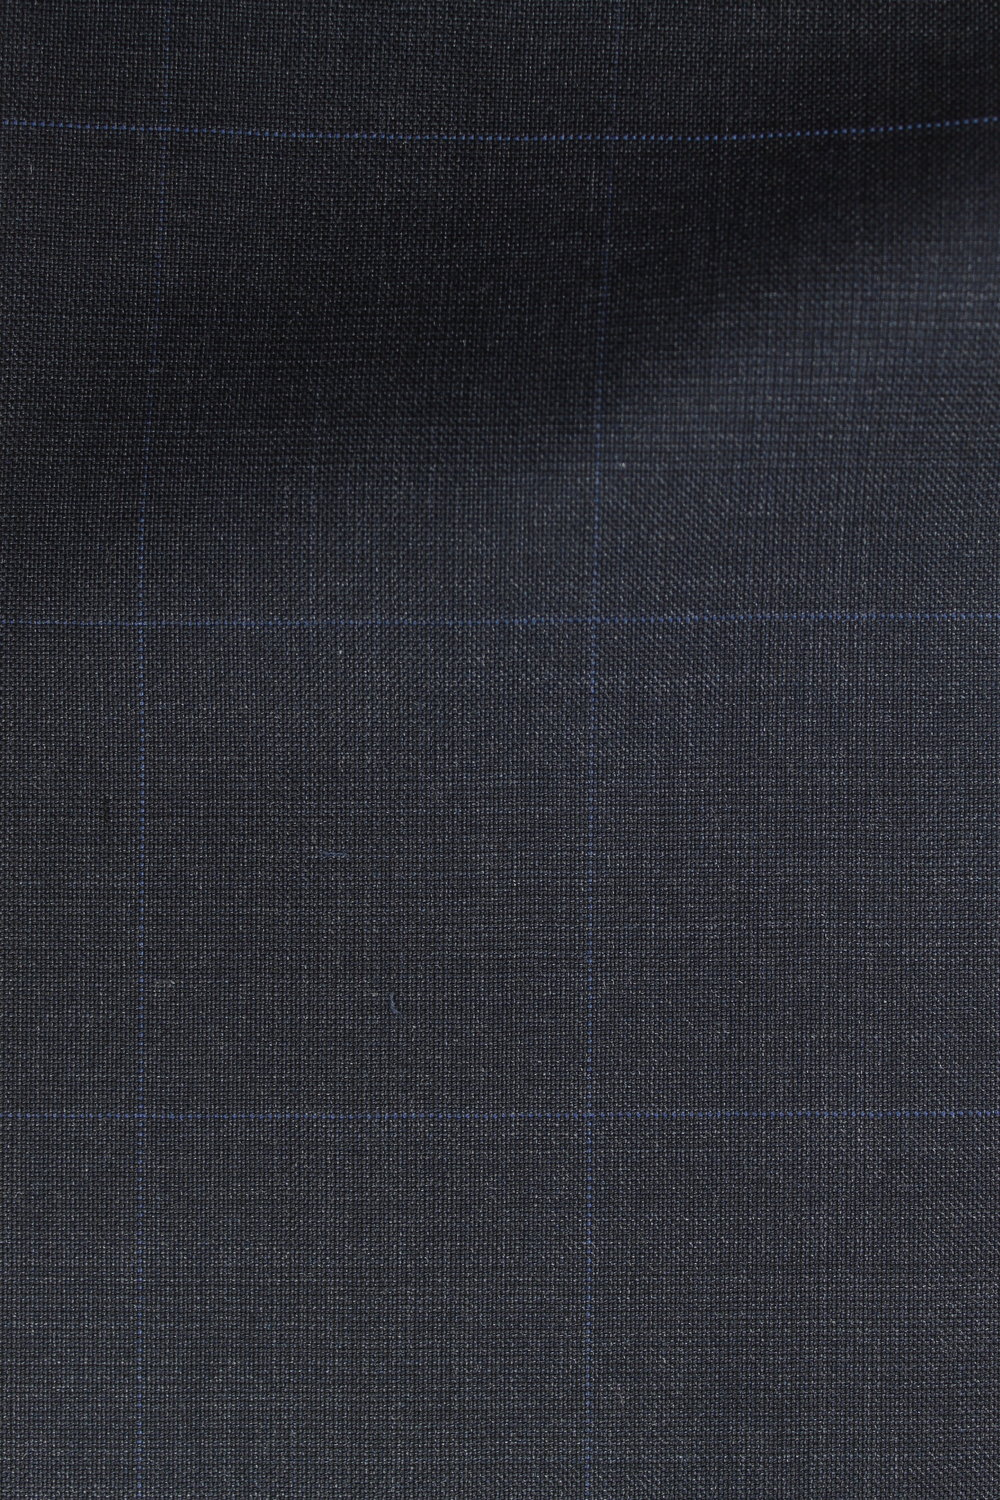 7563 Blue Navy Windowpane 280g.JPG